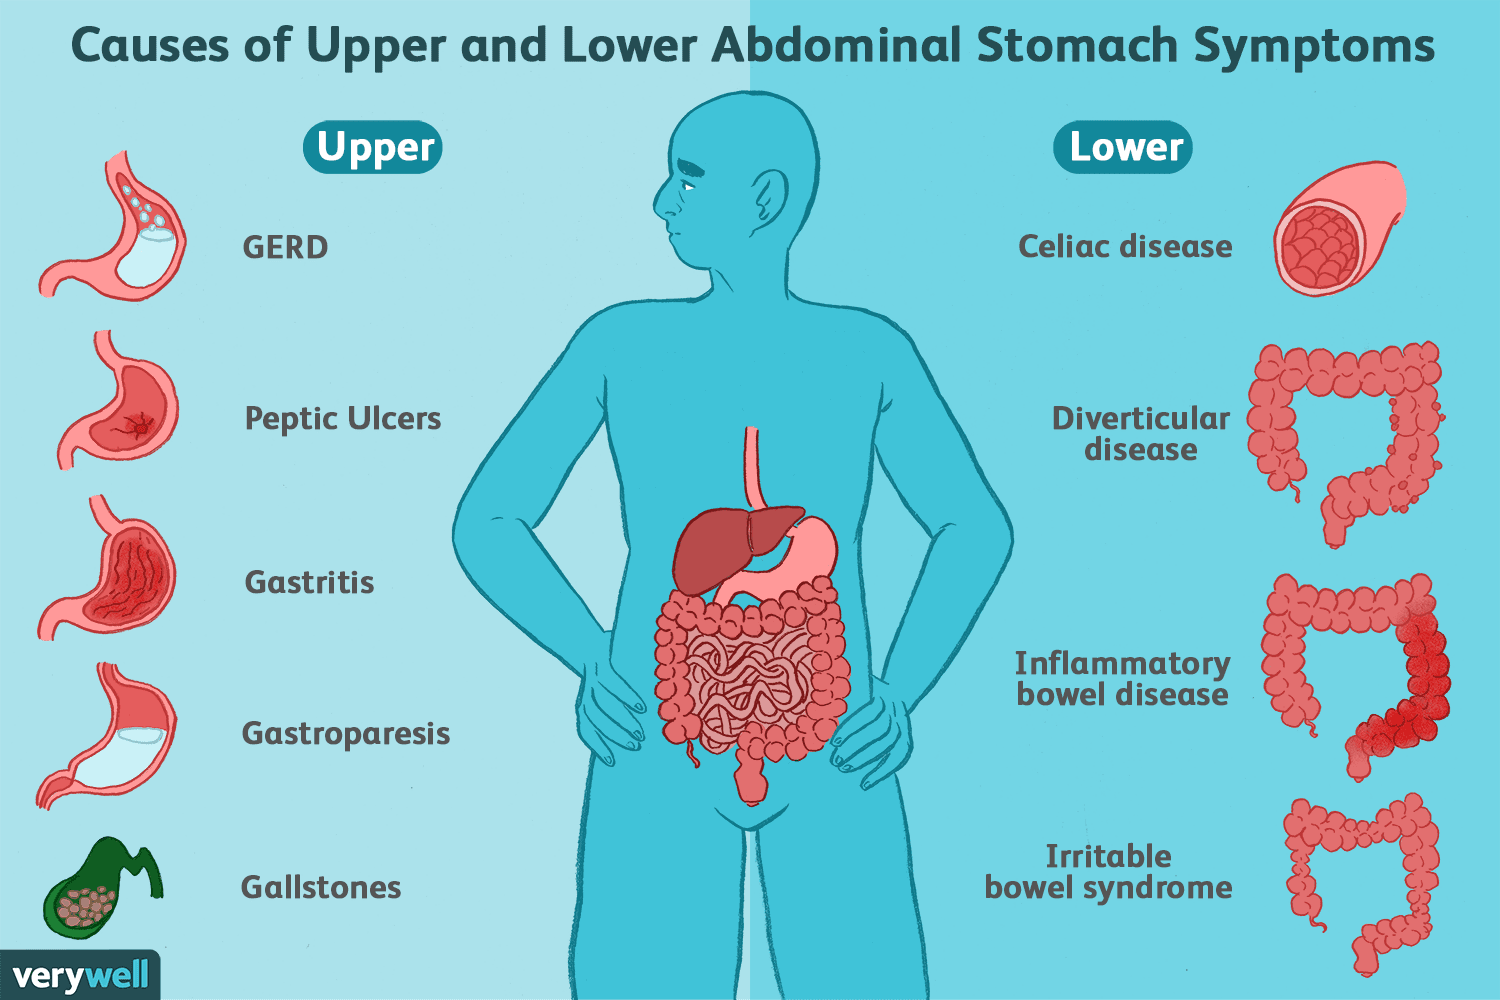 hight resolution of upper and lower abdominal stomach symptoms causes